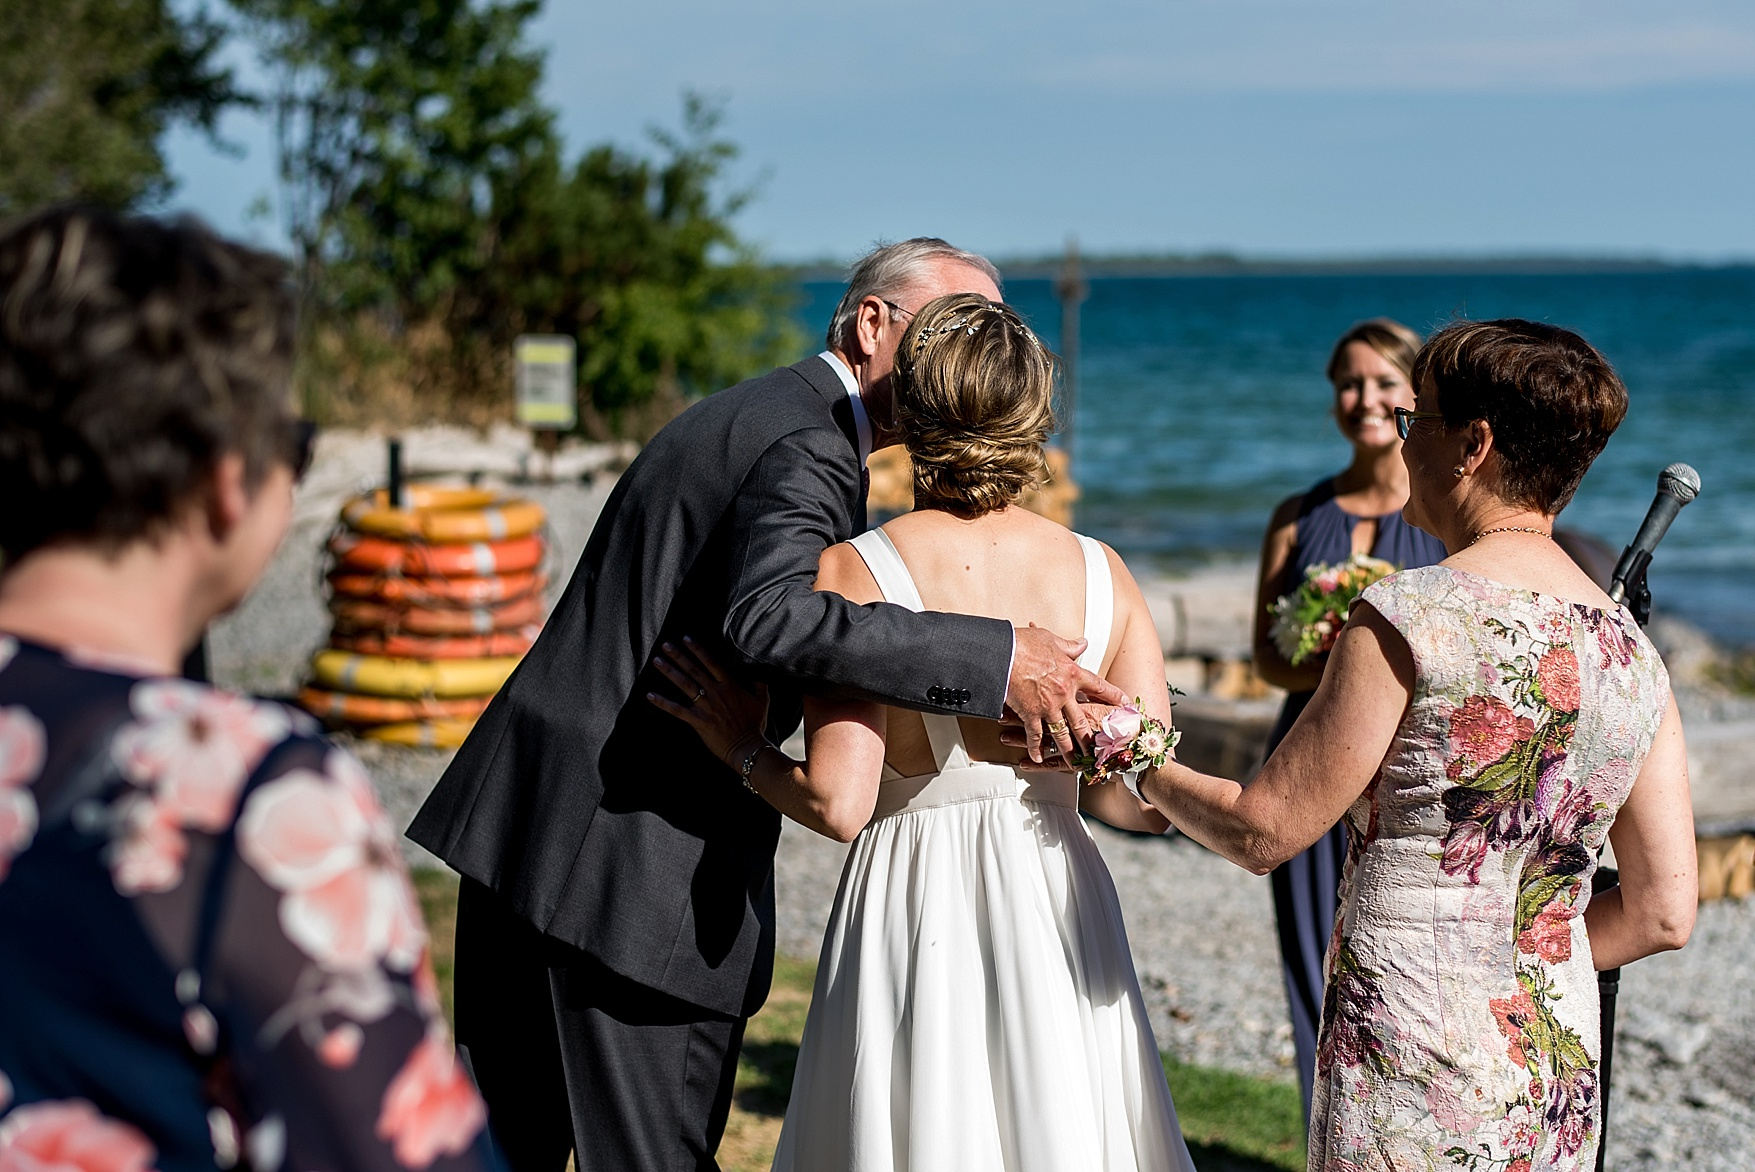 Prince Edward County wedding photographer